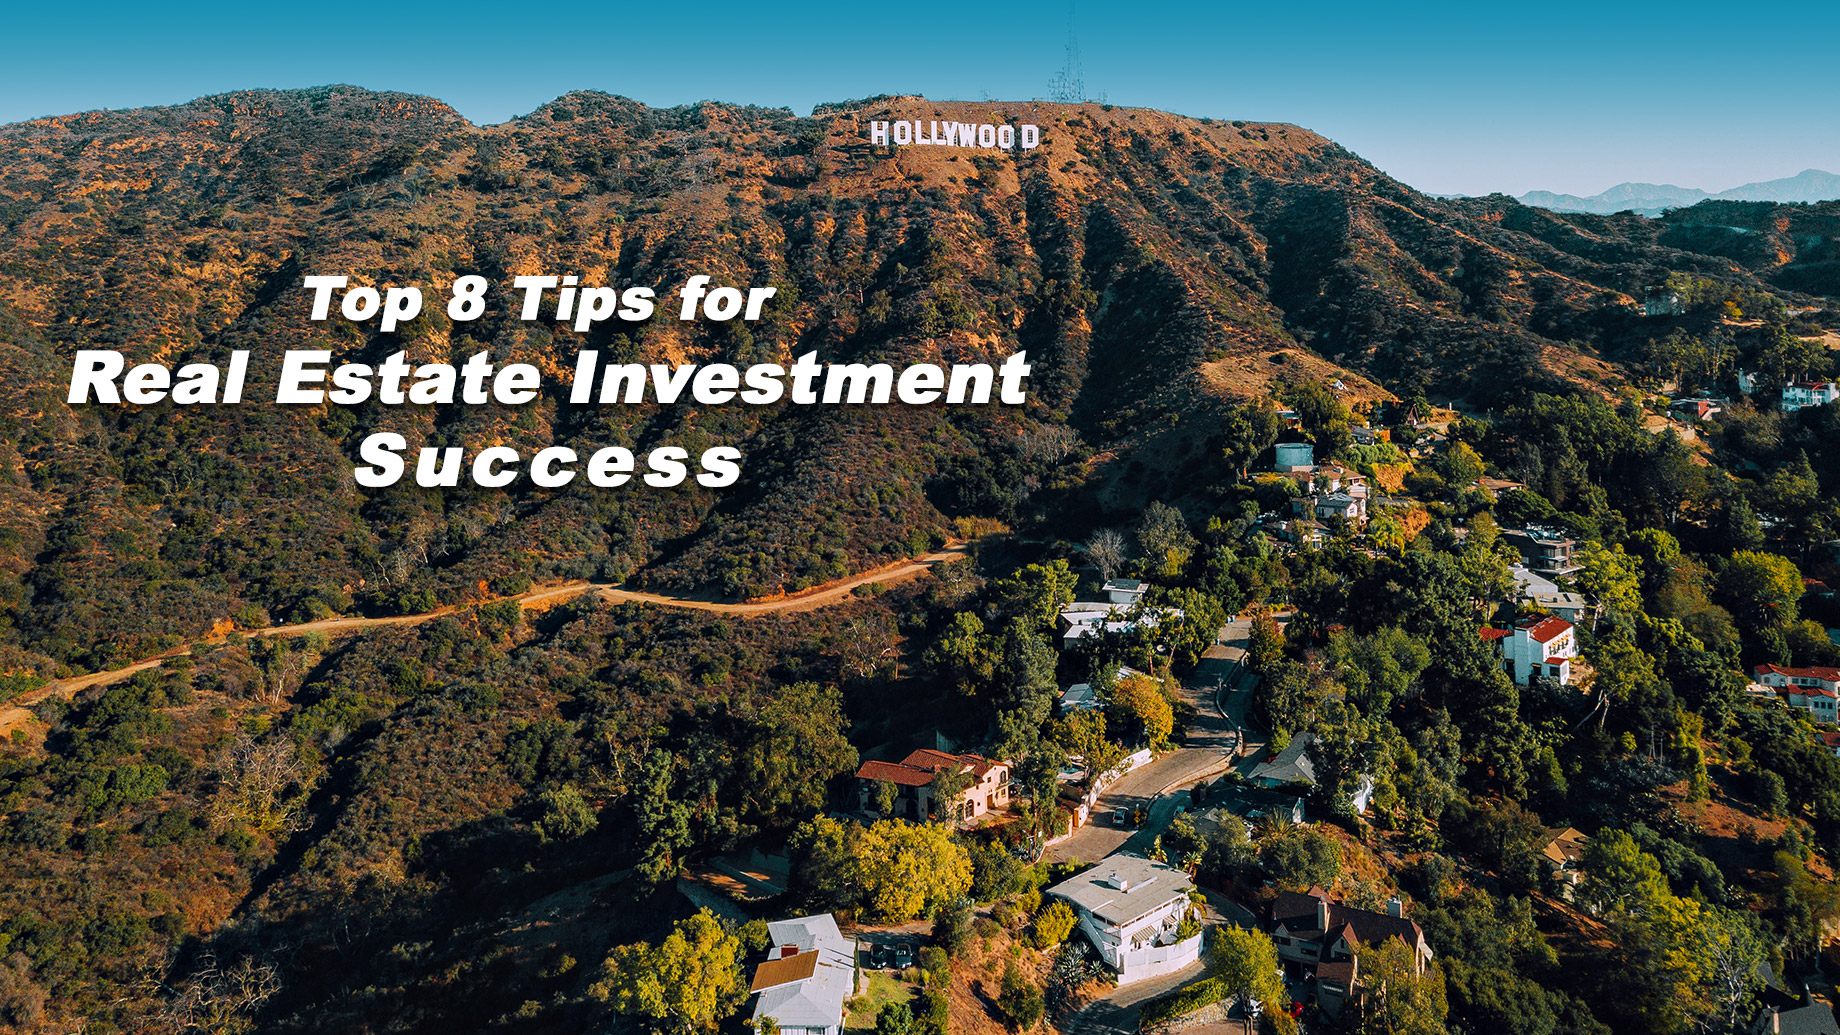 Top 8 Tips for Real Estate Investment Success